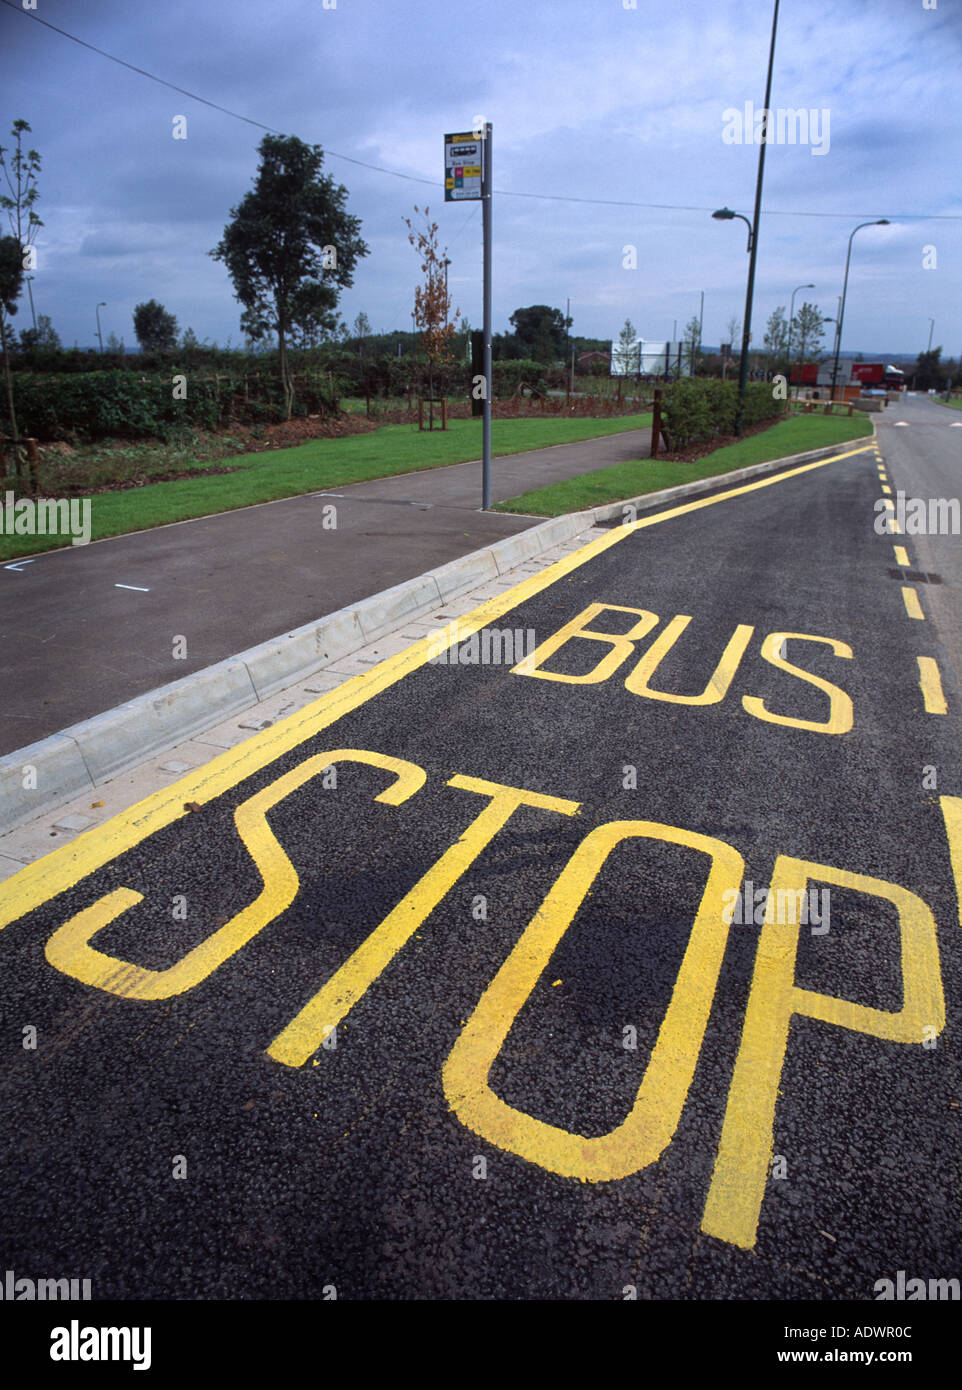 Road Markings Of A Bus Stop Taken From A Higher Elevation Stock - Higher elevation